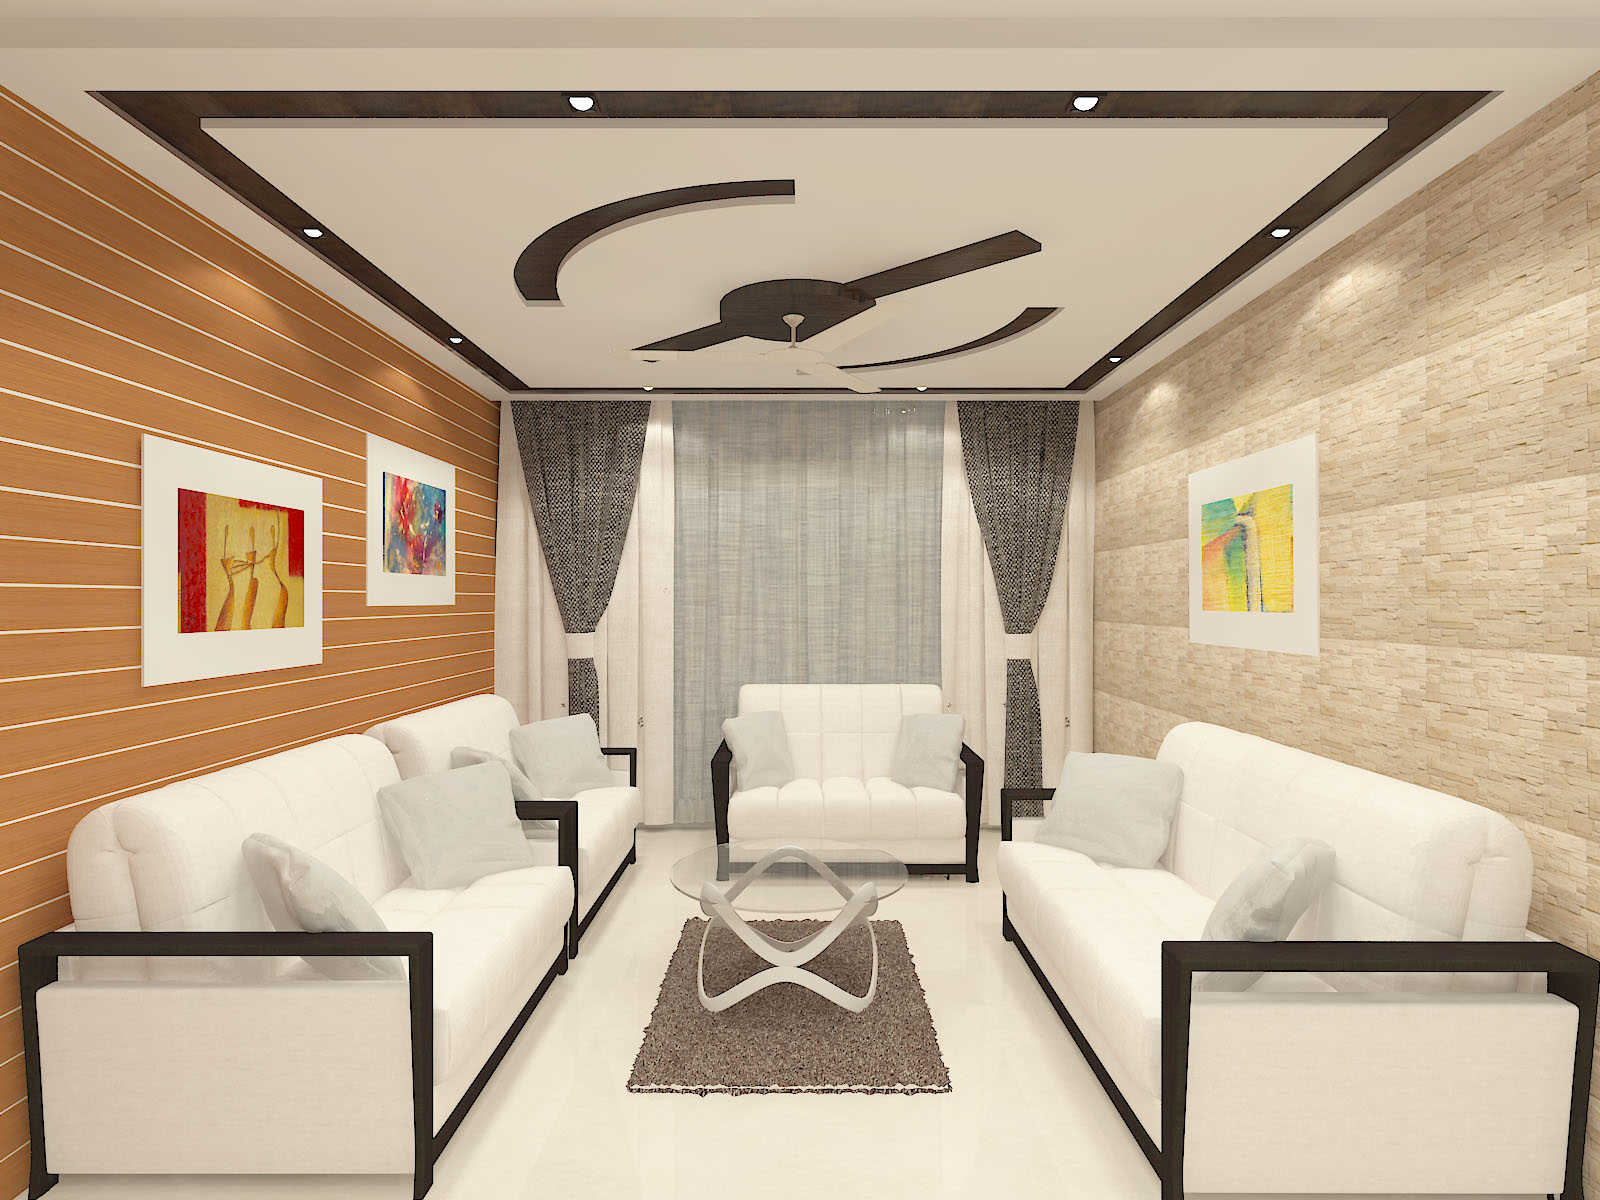 Home interior design at Dr. Shafiqul Bari's residence